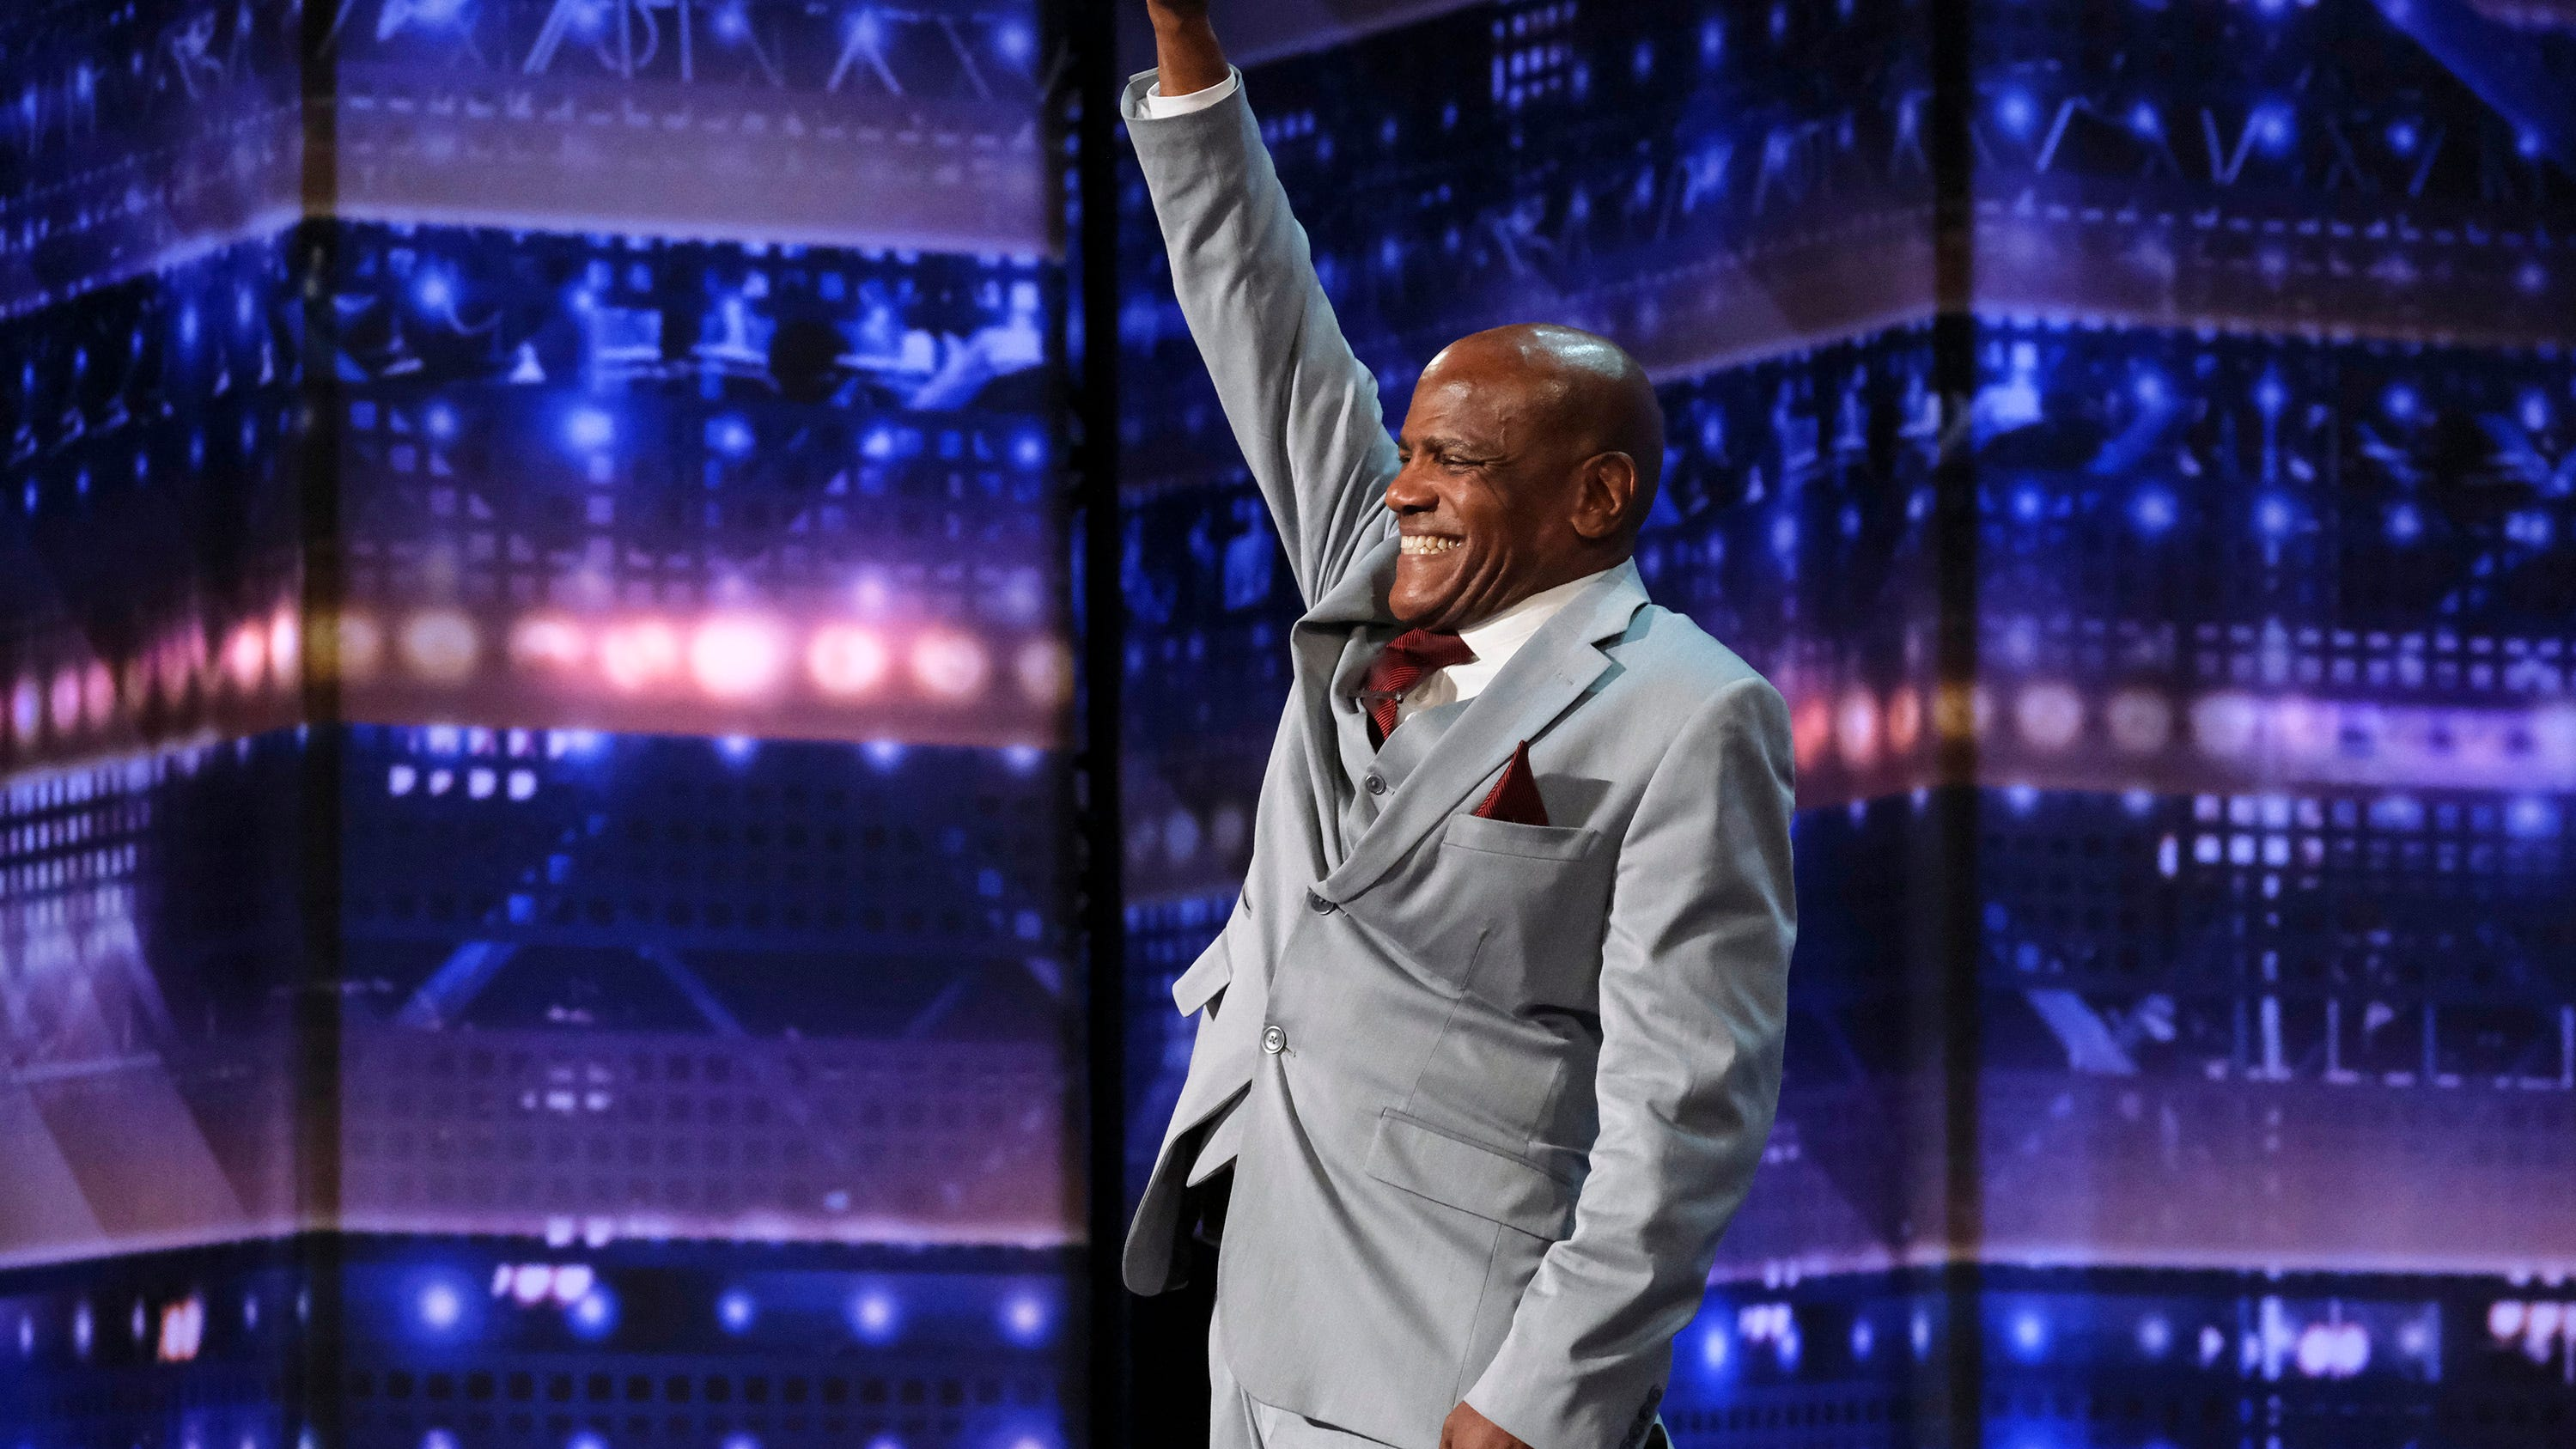 America S Got Talent Archie Williams Sings After Wrongful Conviction